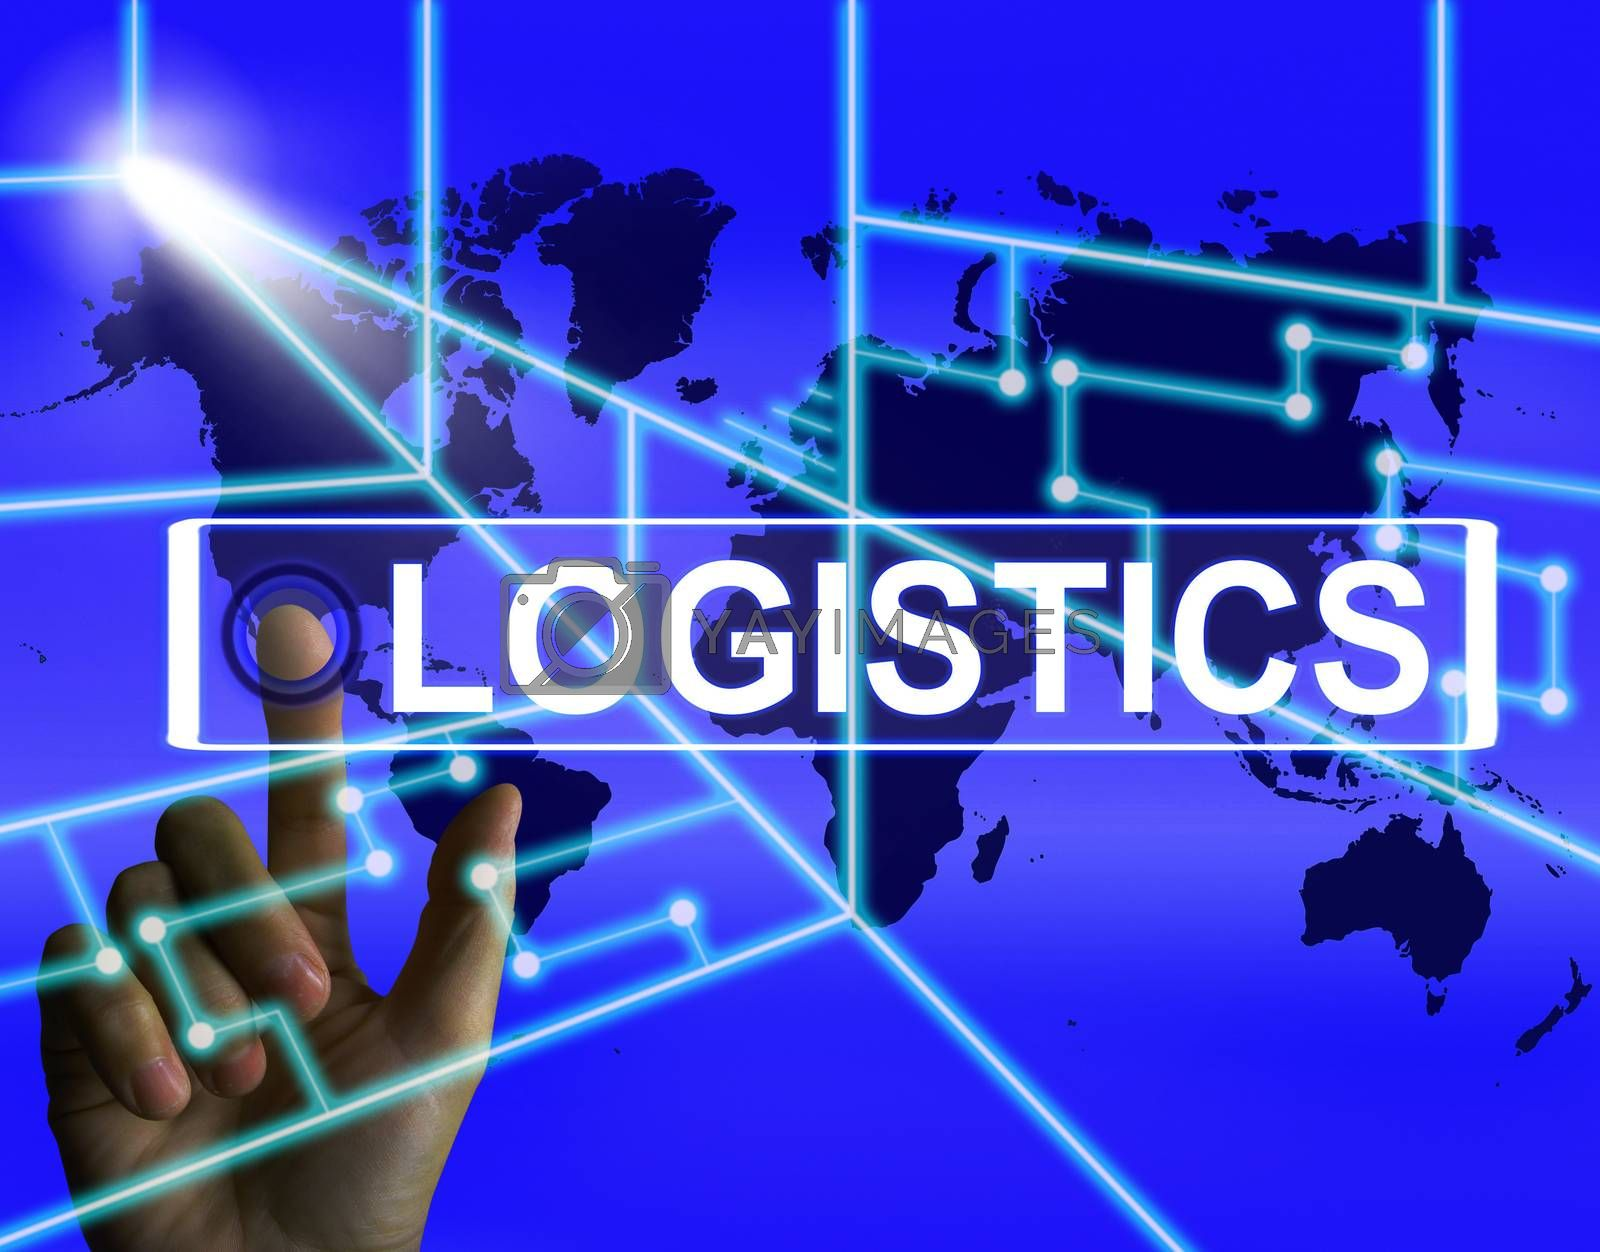 Logistics Screen Indicates Logistical Strategies and Internation by stuartmiles